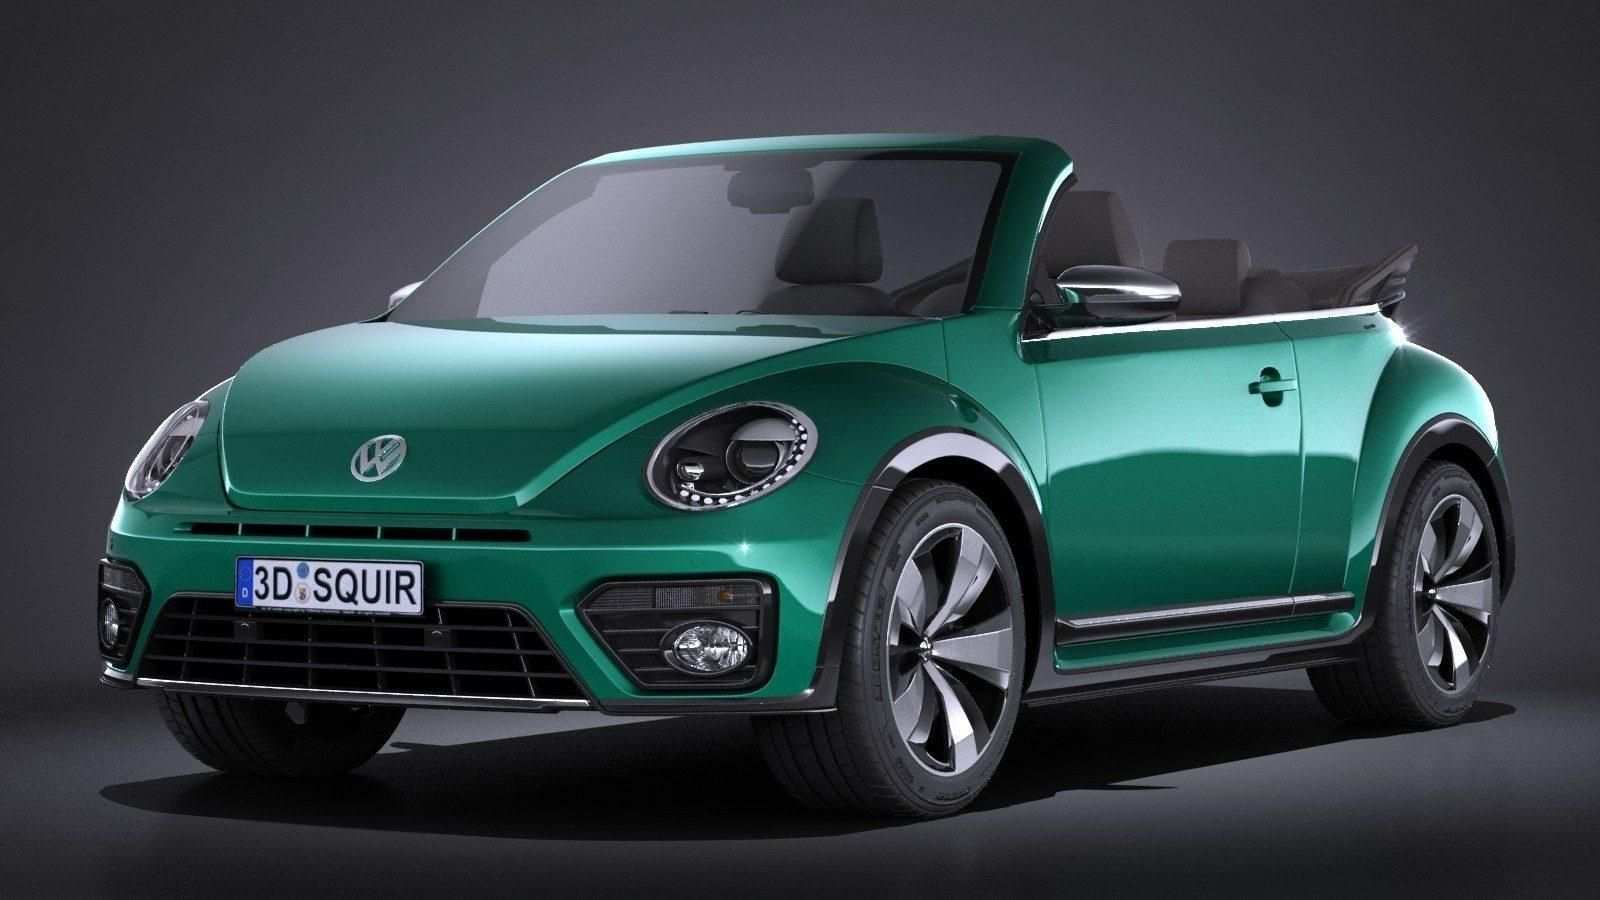 86 The 2019 Volkswagen Beetle Convertible Images by 2019 Volkswagen Beetle Convertible